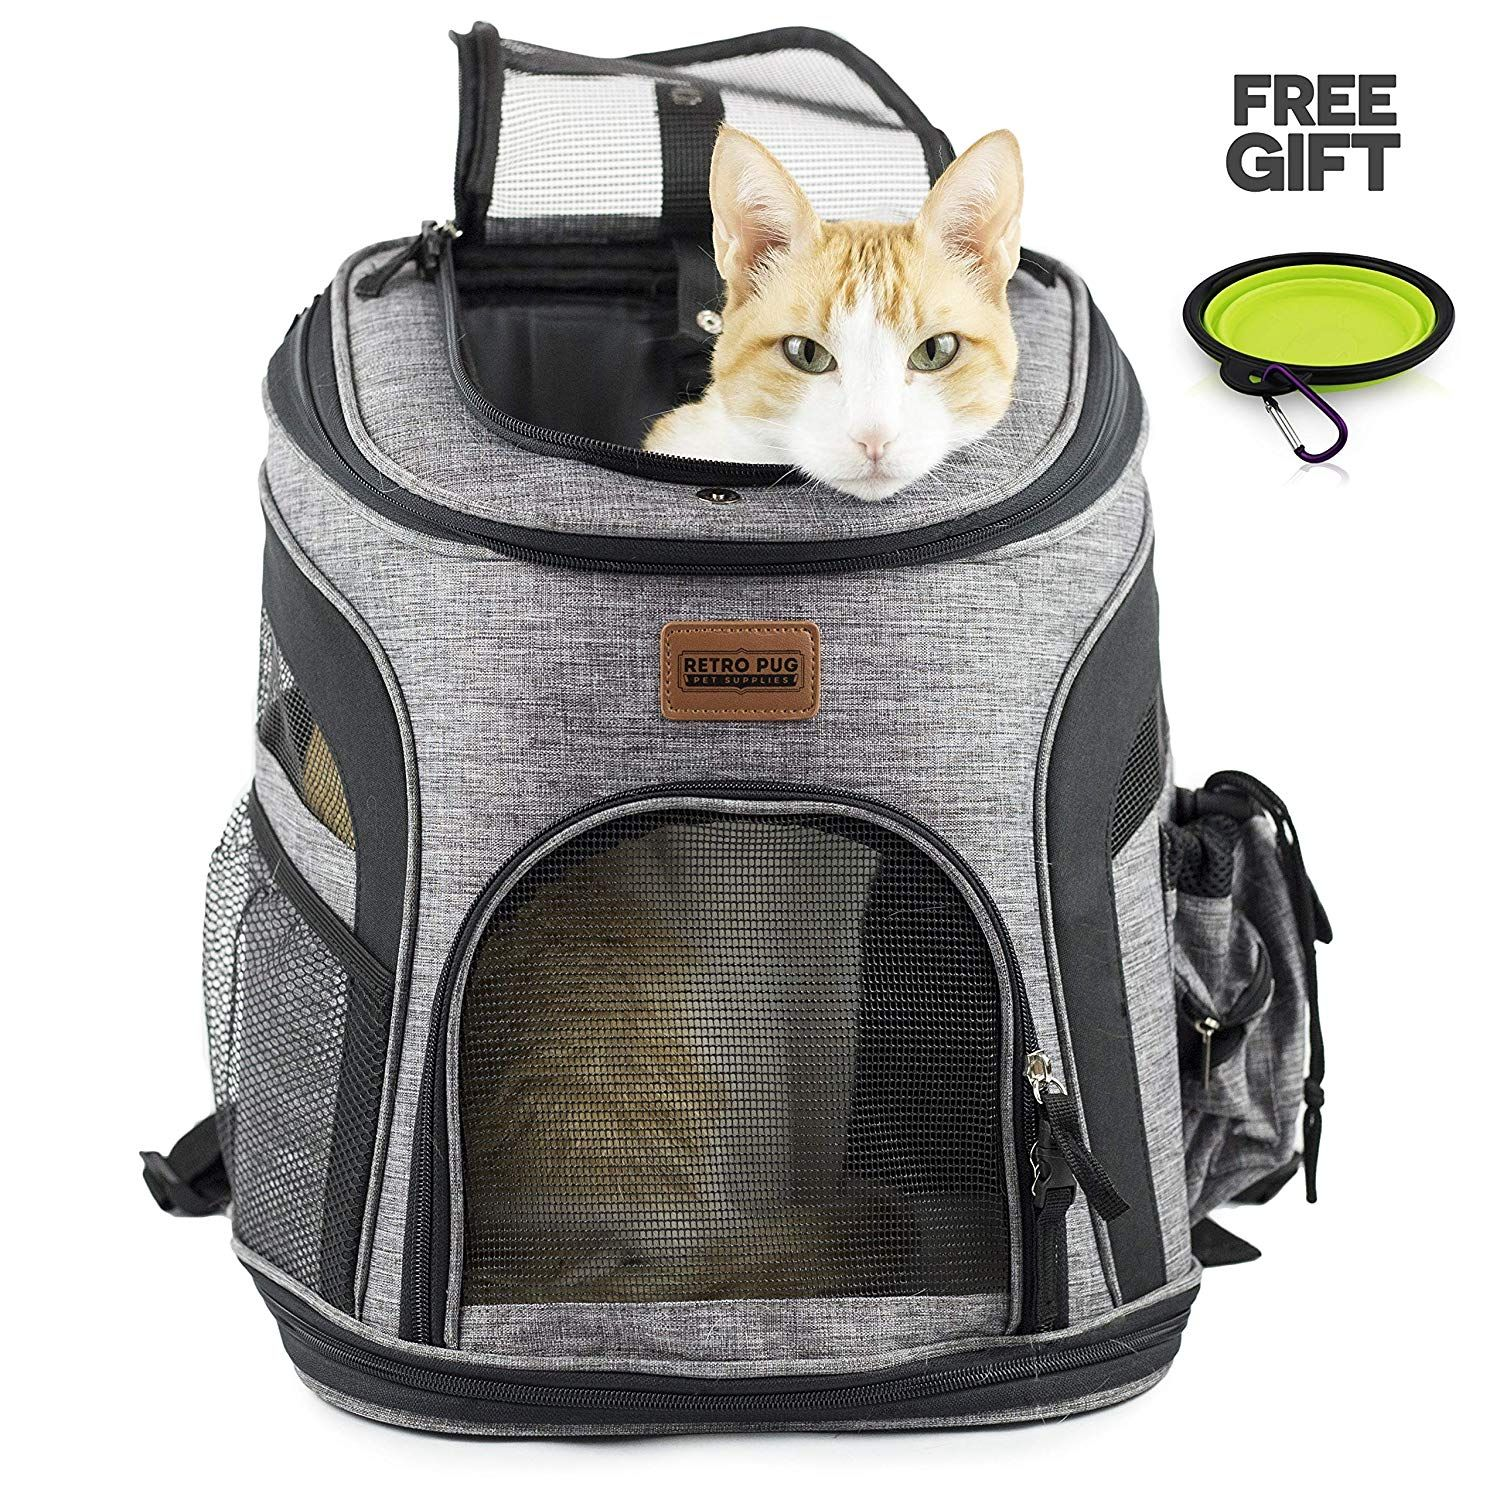 Airline Approved Pet Carrier For Cats And Small Breed Dogs Up To 10 Lbs A Great Idea For Travel Hiking Pet Backpack Carrier Cat Carrier Cat Backpack Carrier